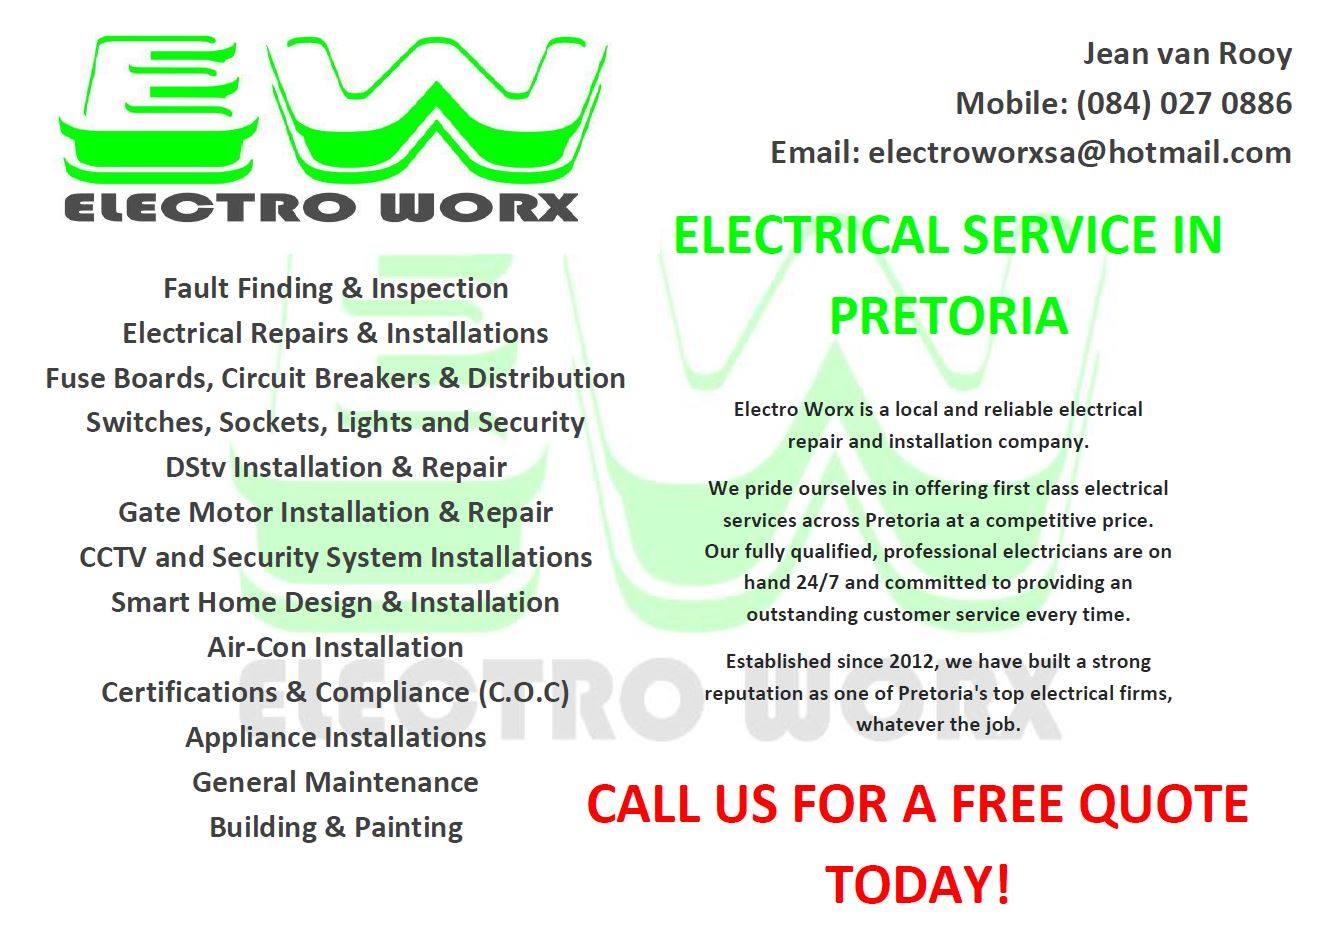 Electro Worx - Electrical Services - Pretoria